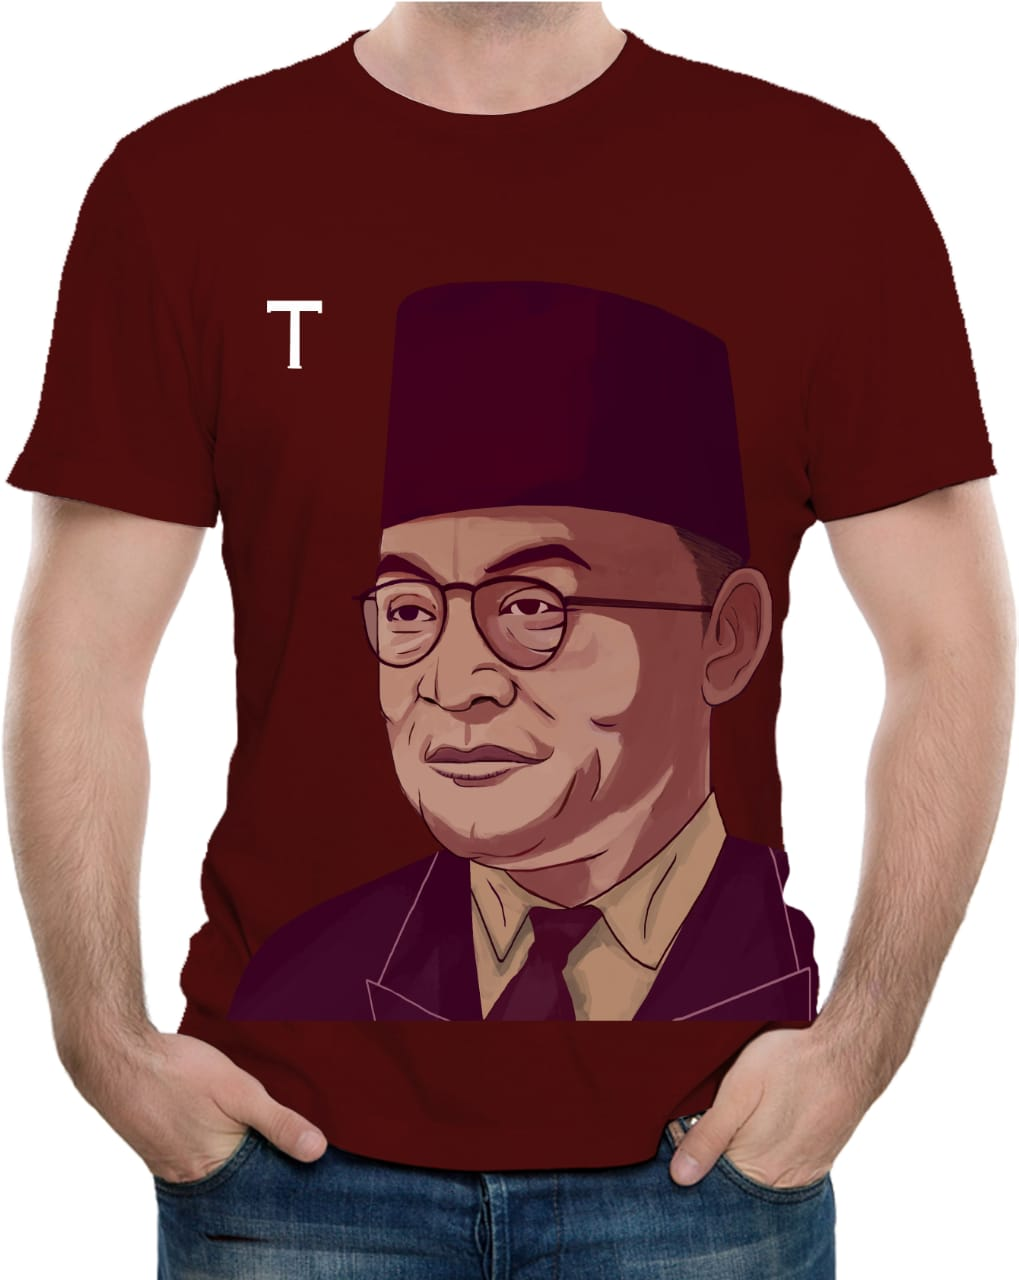 Tshirt Founding Father Bung Hatta (Maroon) - LIMITED EDITION